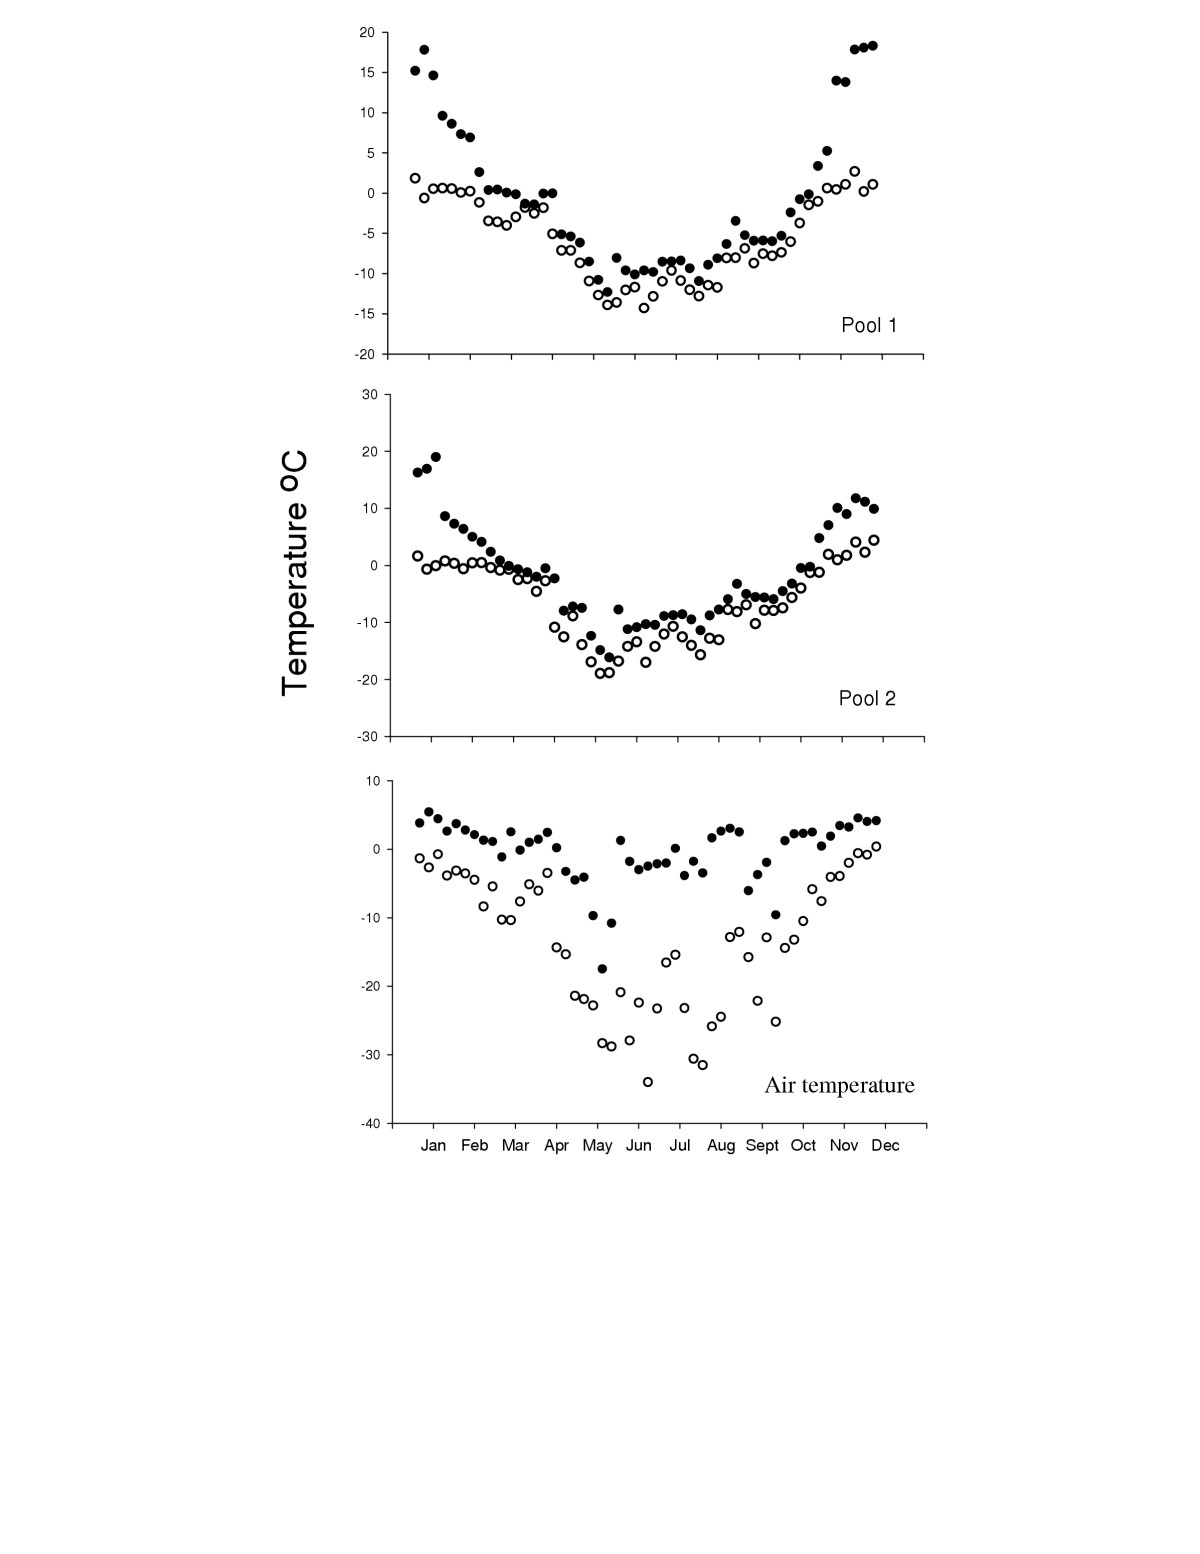 http://static-content.springer.com/image/art%3A10.1186%2F1742-9994-2-9/MediaObjects/12983_2005_Article_15_Fig1_HTML.jpg